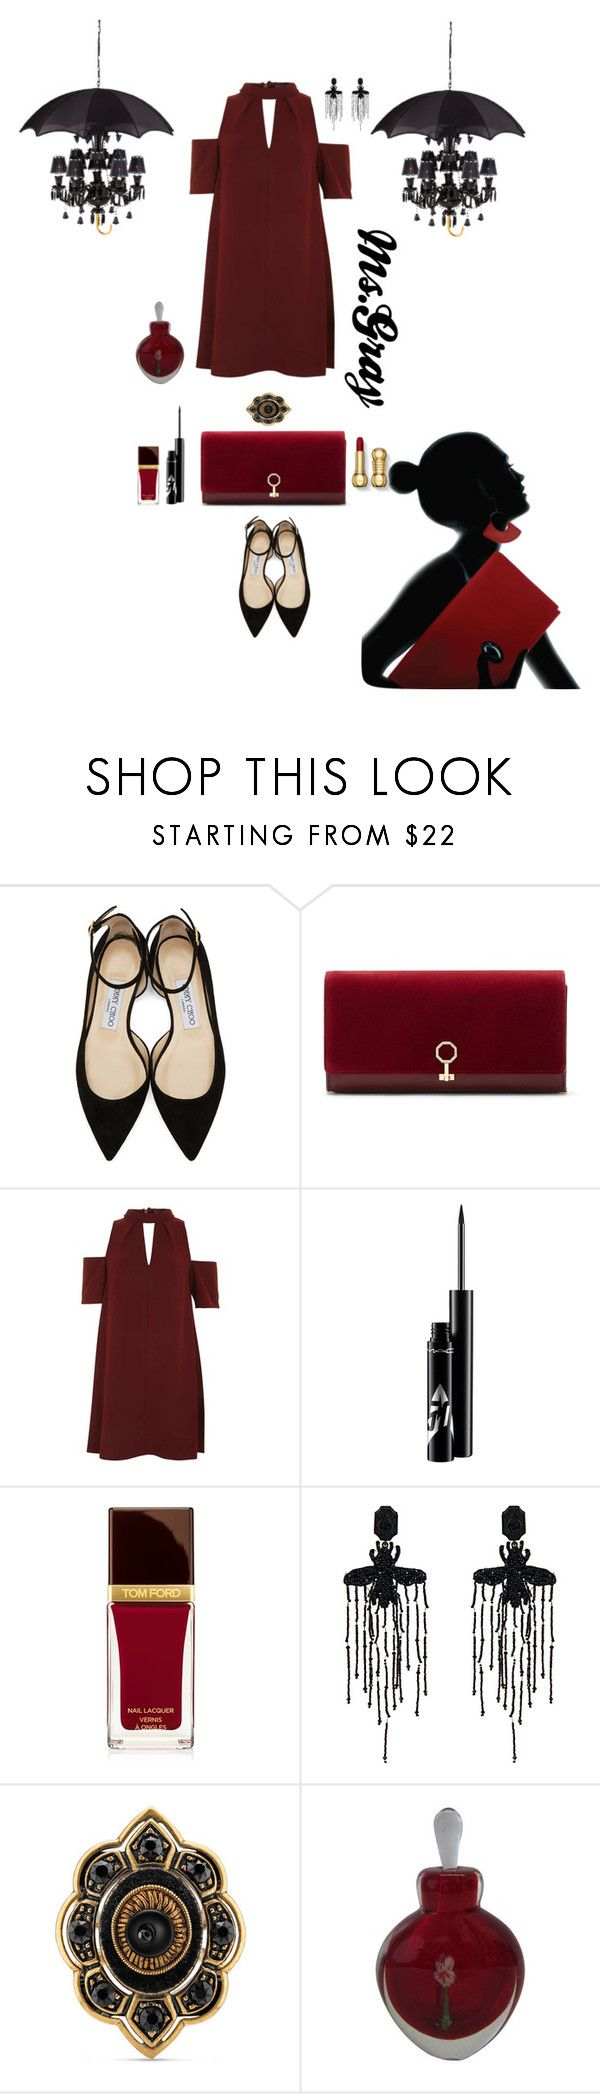 """""""Madame Demimonde"""" by fmsgray ❤ liked on Polyvore featuring Jimmy Choo, Louise et Cie, Topshop, Tom Ford, Gucci and Dot & Bo"""